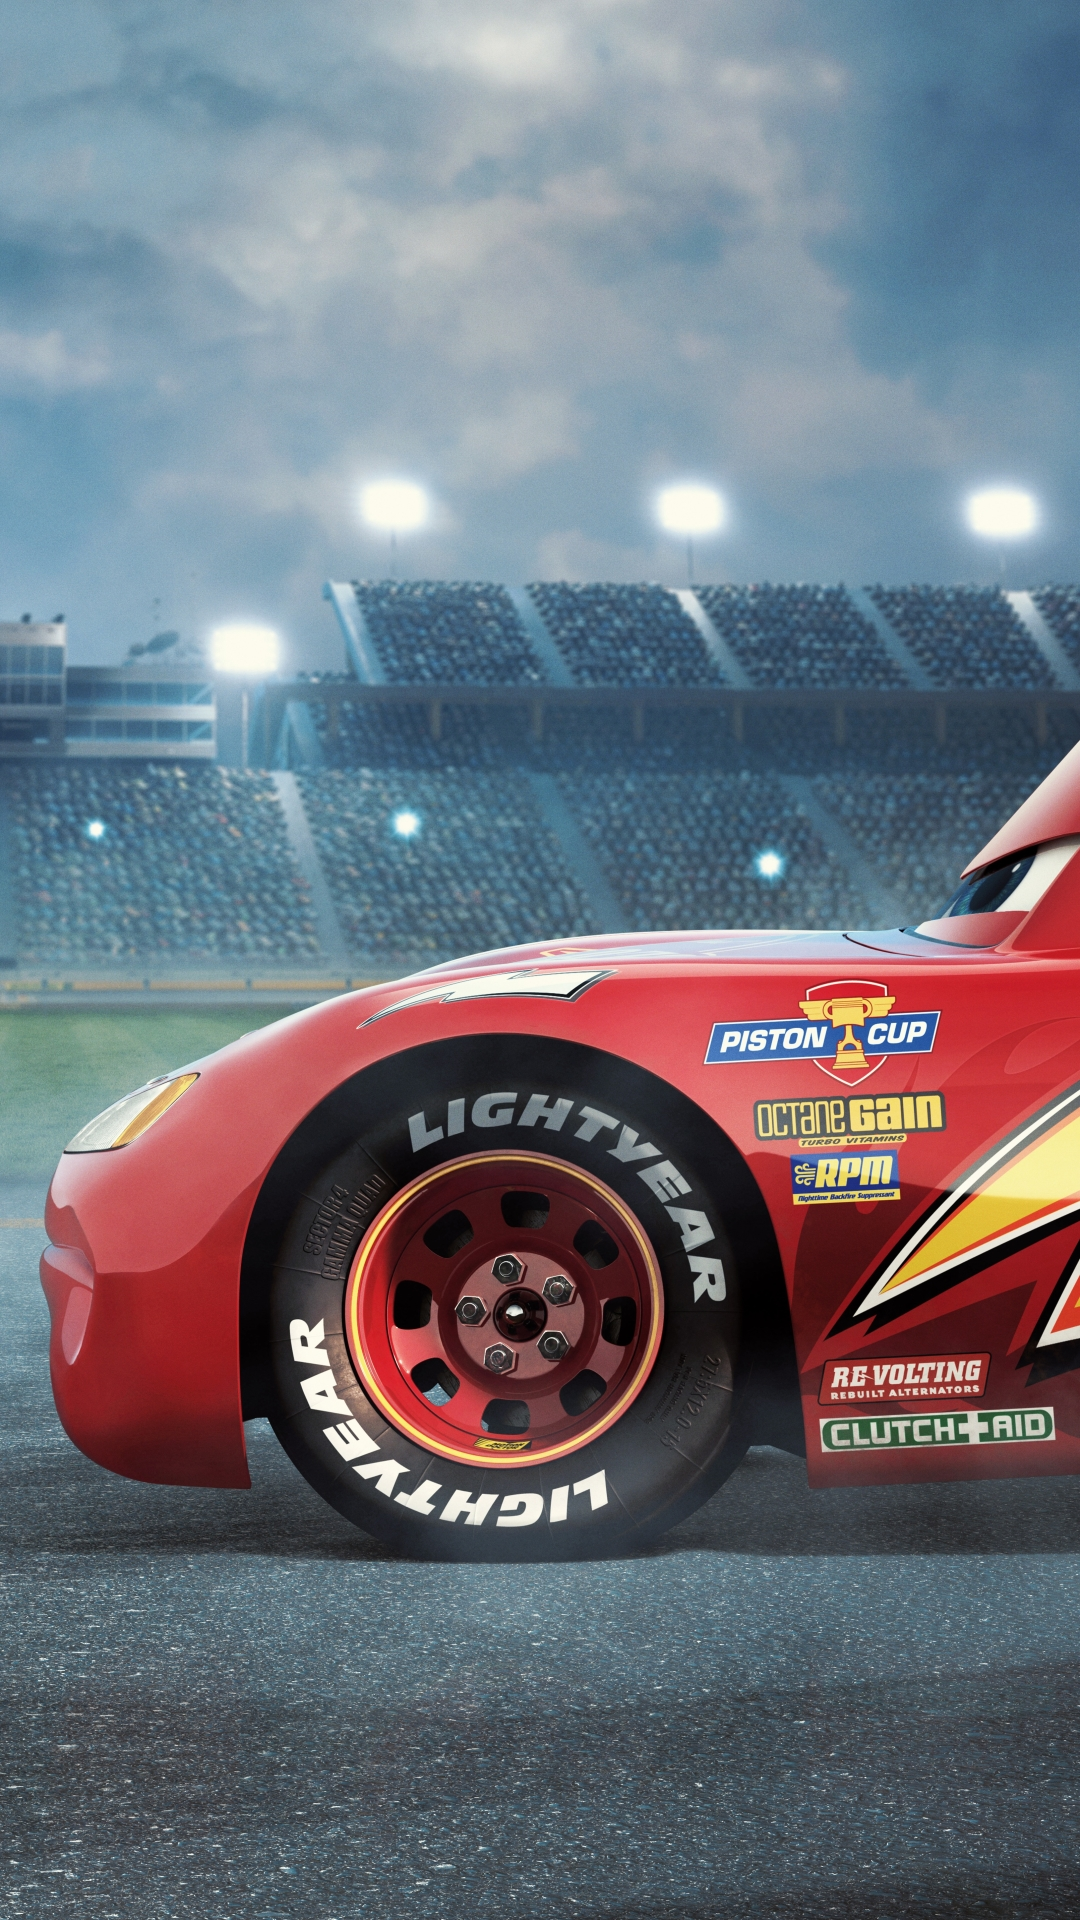 Movie Cars 3 1080x1920 Wallpaper Id 719098 Mobile Abyss